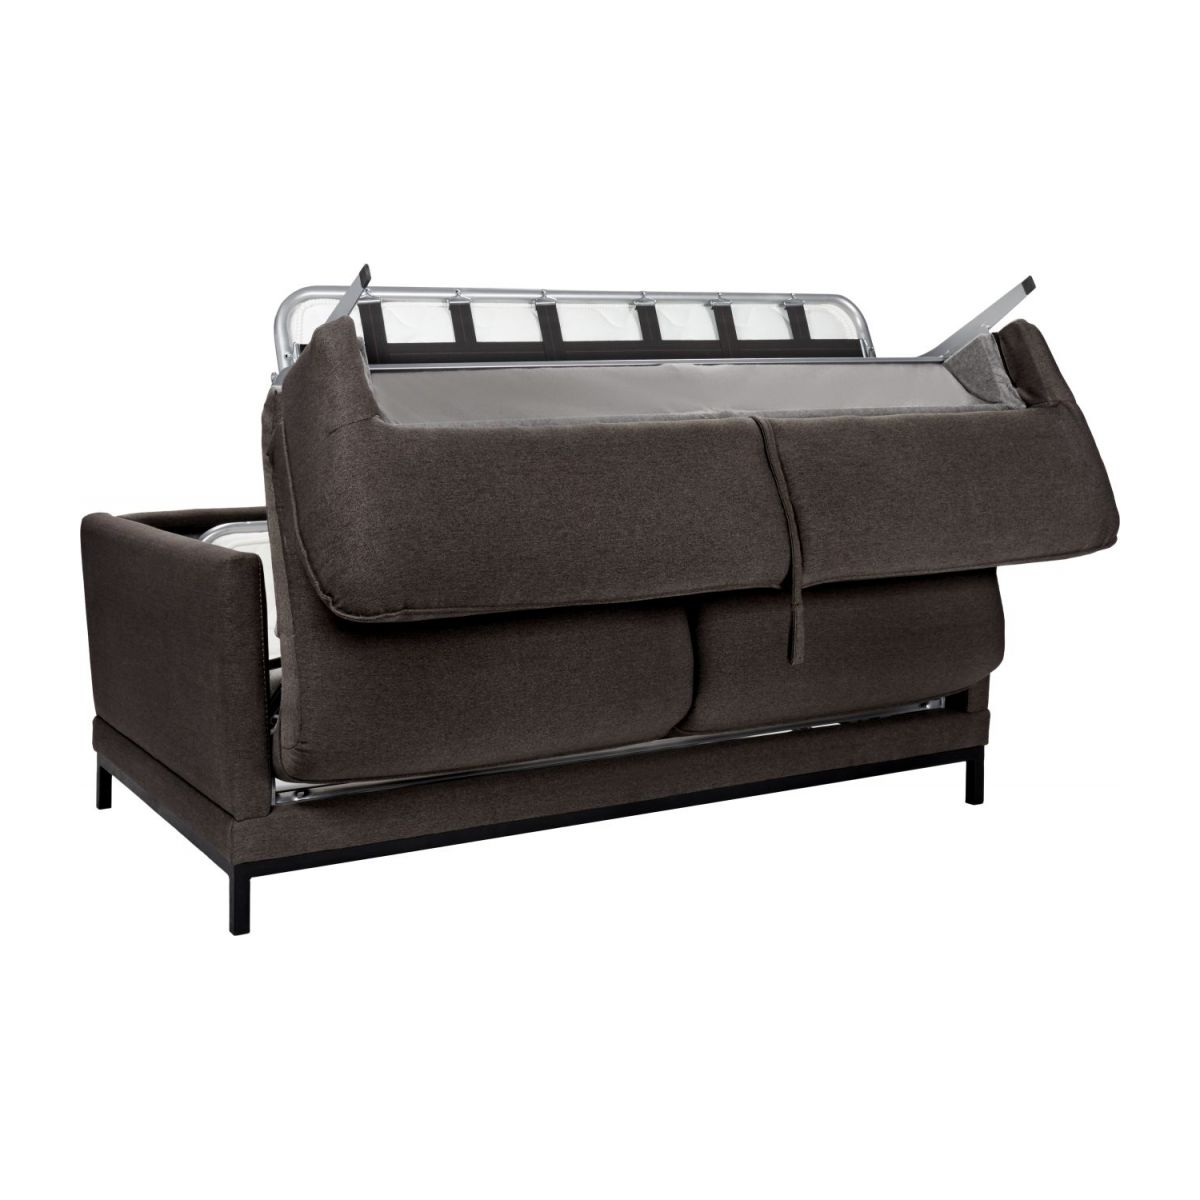 Fabric 3-seater sofa bed, anthracite n°2